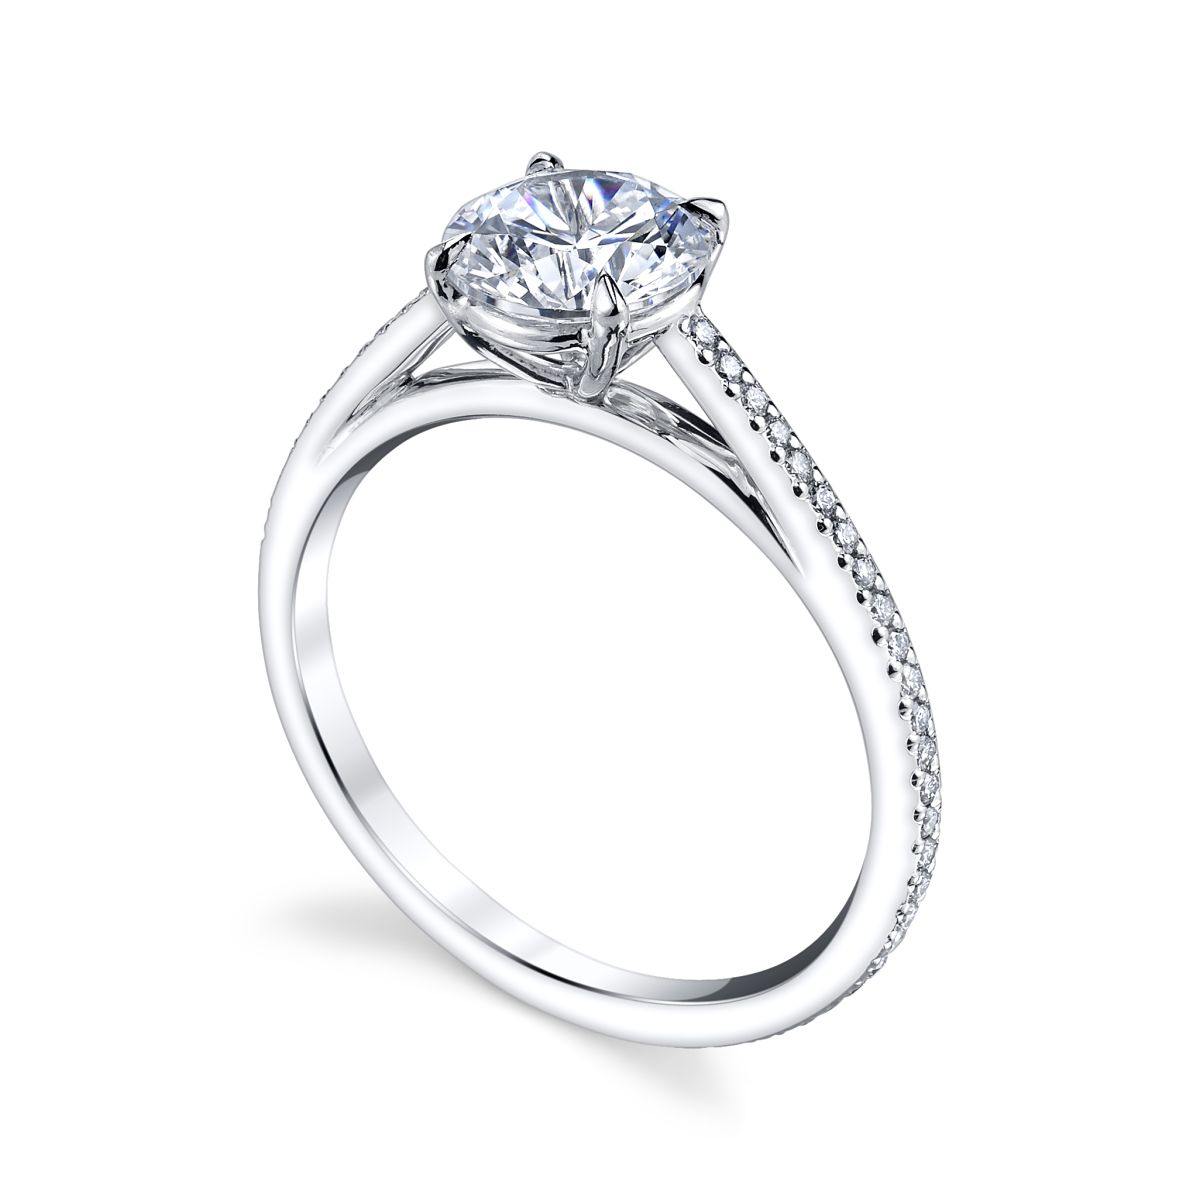 Chicago Bridal Marshall Pierce Company Michael B Venice Engagement Ring With Micropave Stunning Engagement Ring Engagement Rings Engagement Rings Chicago